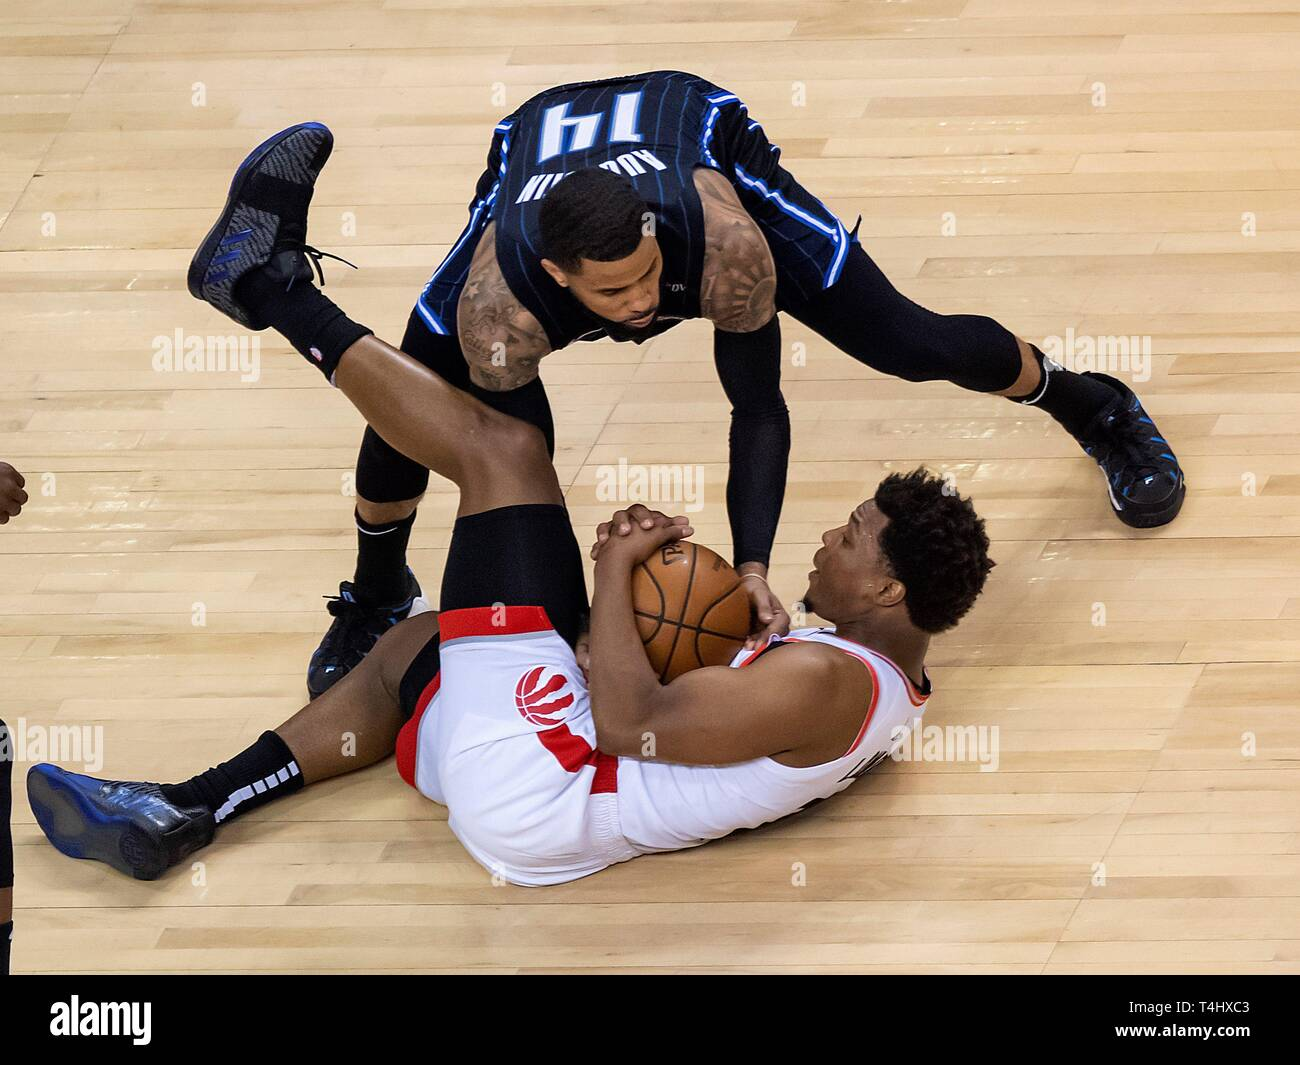 Toronto, Canada. 16th Apr, 2019. Orlando Magic guard D.J. Augustin (top) fights for possession of the ball against Toronto Raptors guard Kyle Lowry during the second quarter of game two in their NBA Eastern Conference Quarterfinals basketball game at Scotiabank Arena in Toronto, Canada, 16 April 2019. Credit: Warren Toda/EFE/Alamy Live News - Stock Image